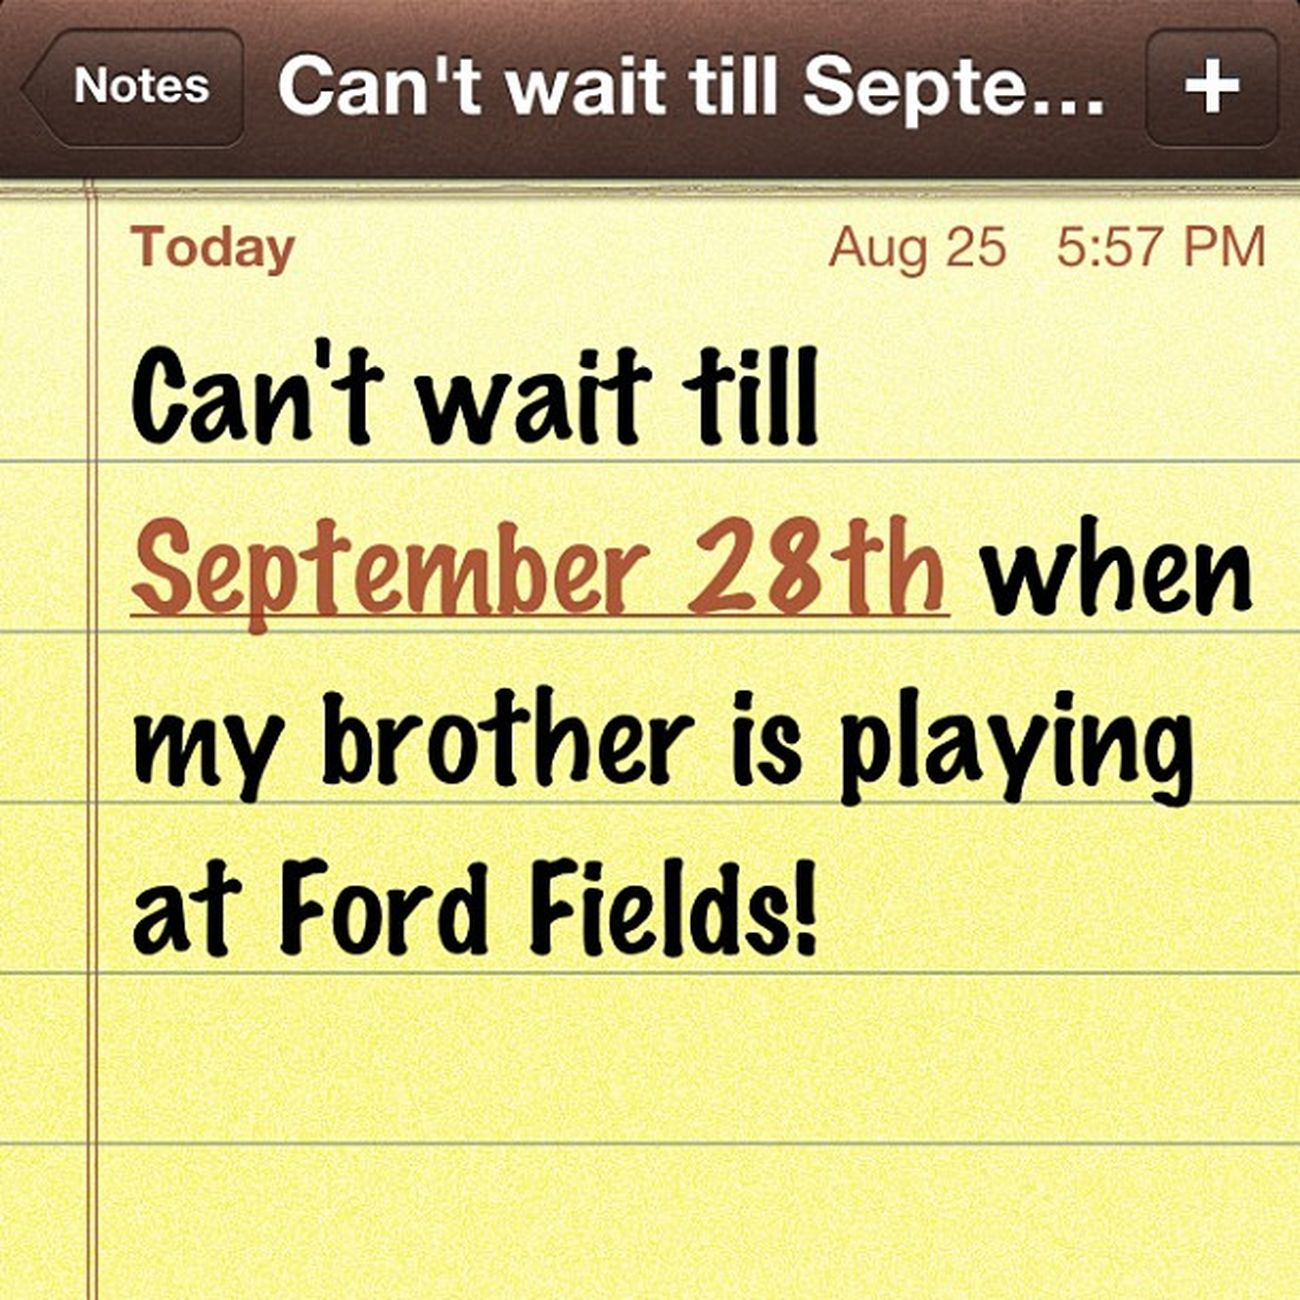 Seriously though☺? Cool Fordfields Varsityfootballgames Brother romeobulldogs woo cantwait